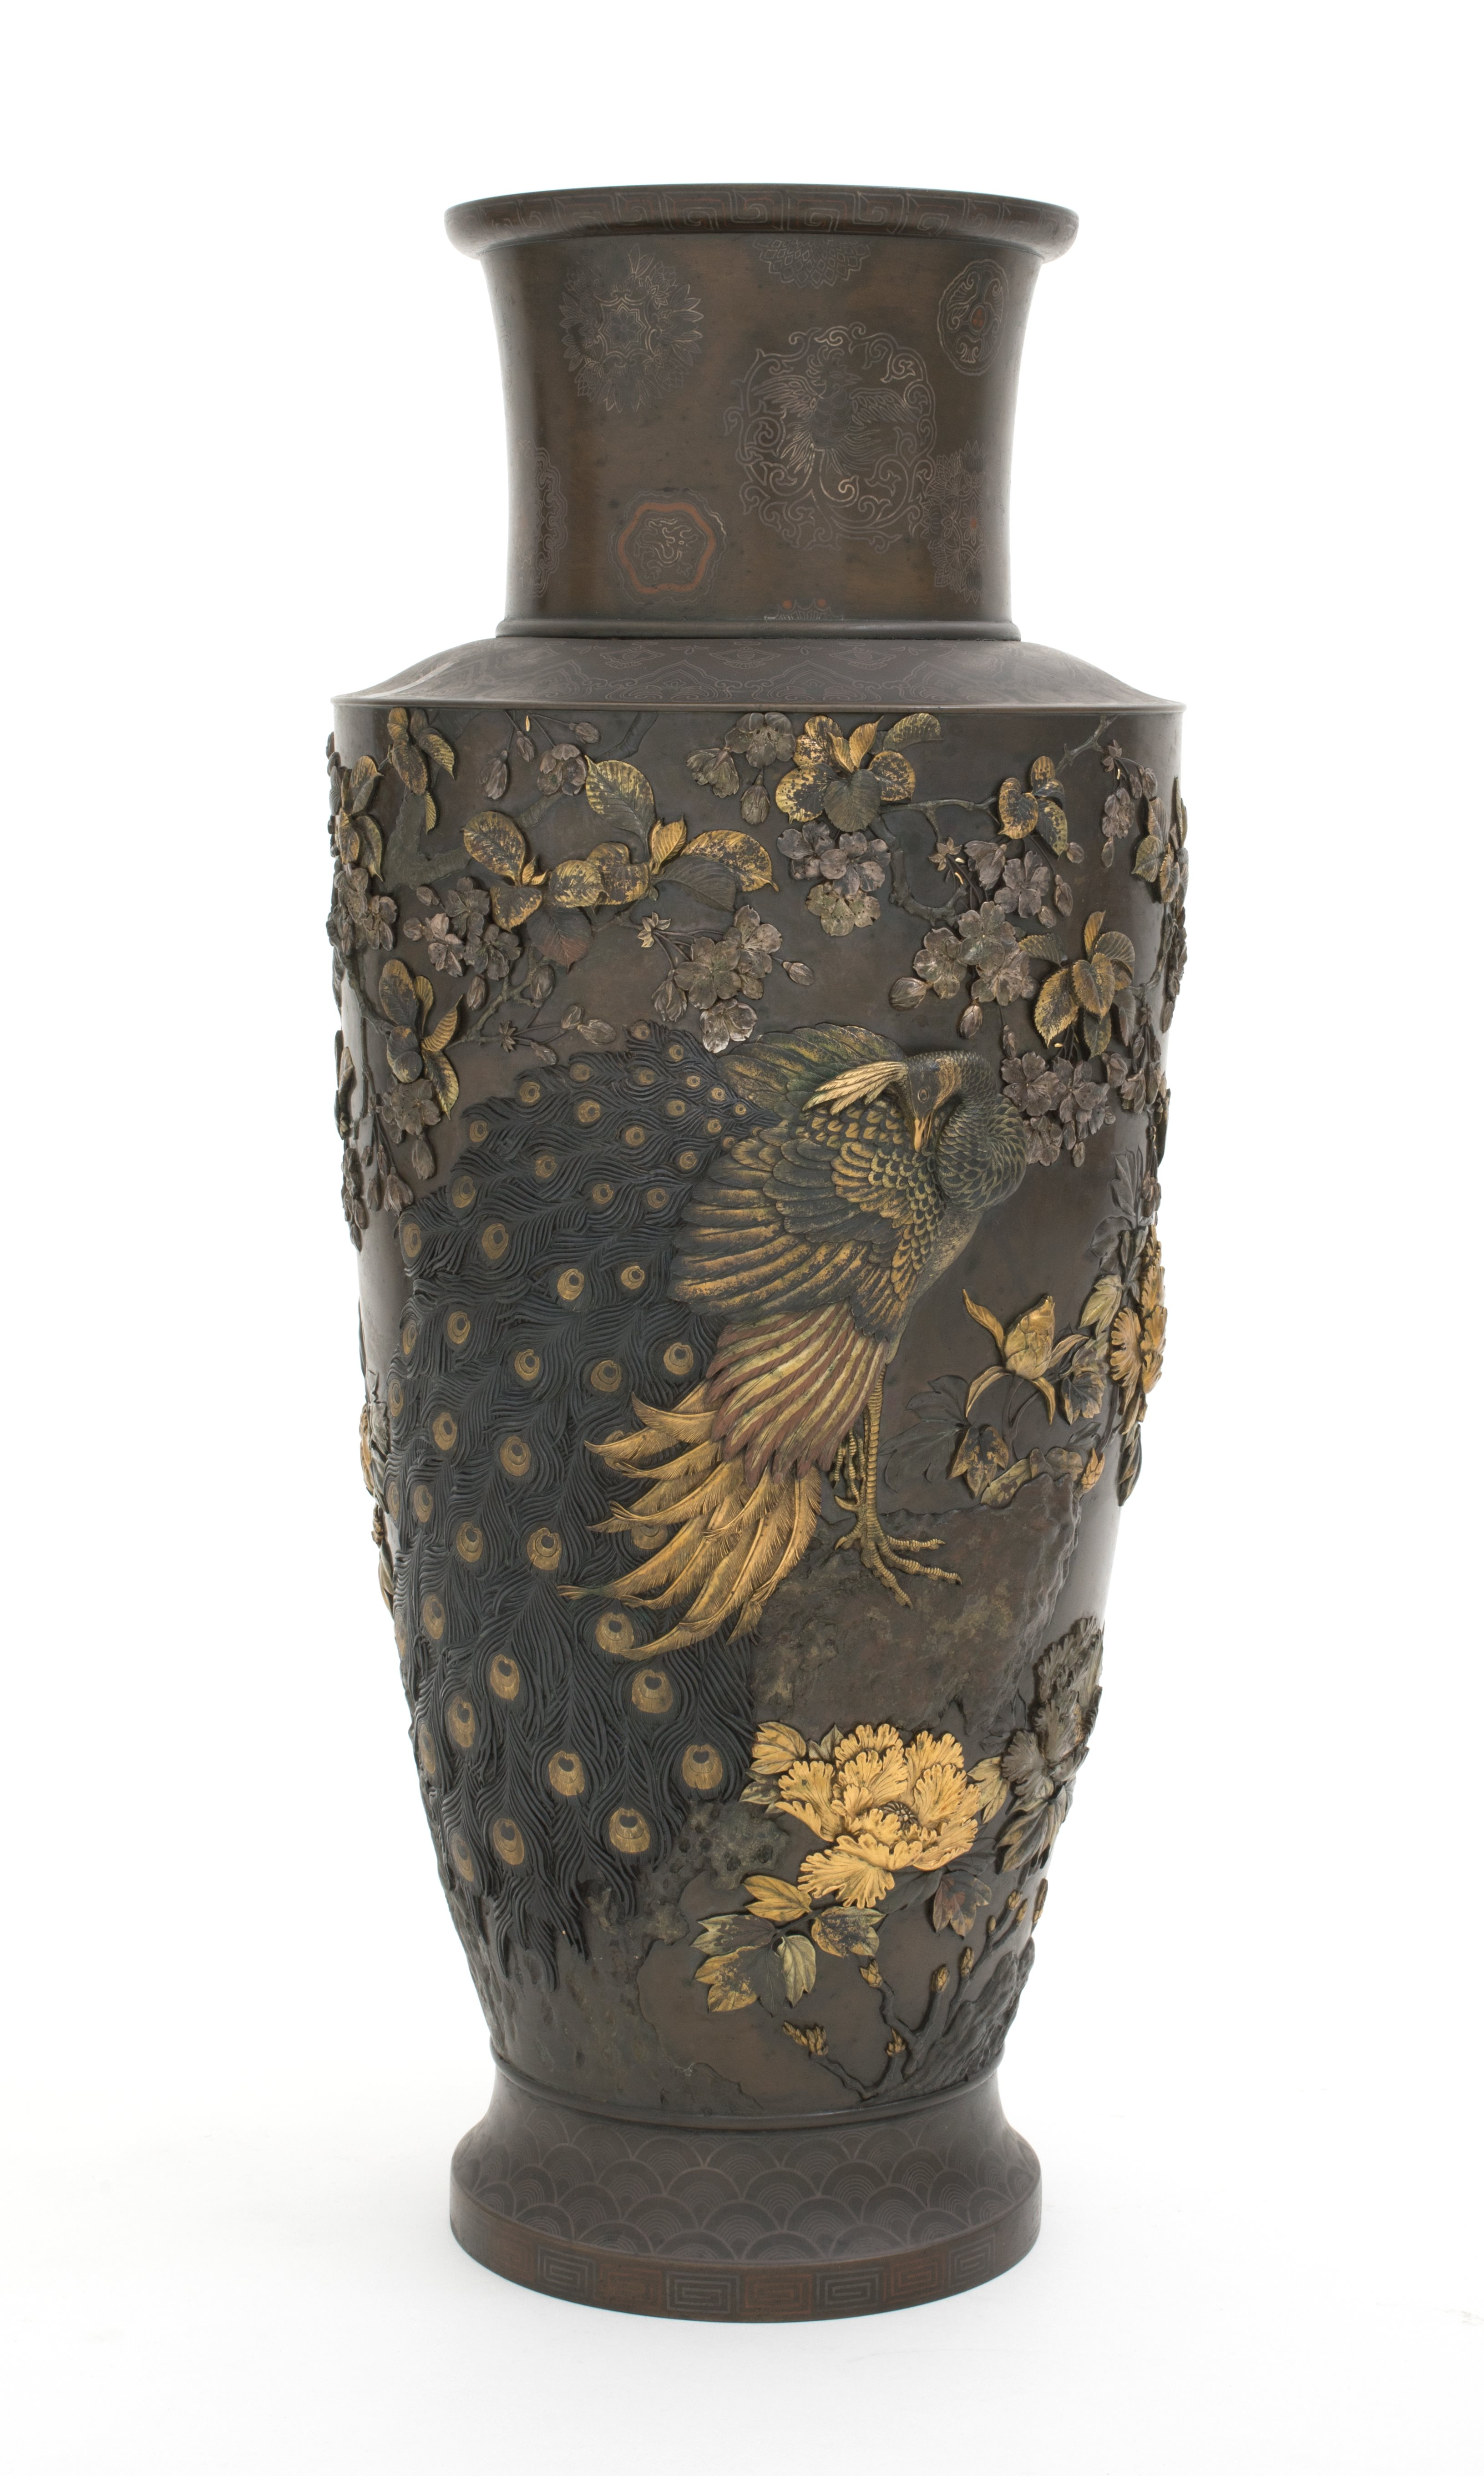 Bronze vase with a single peacock in the centre with foliage and pink tinged blossoms overhead and the golden peony underneath.